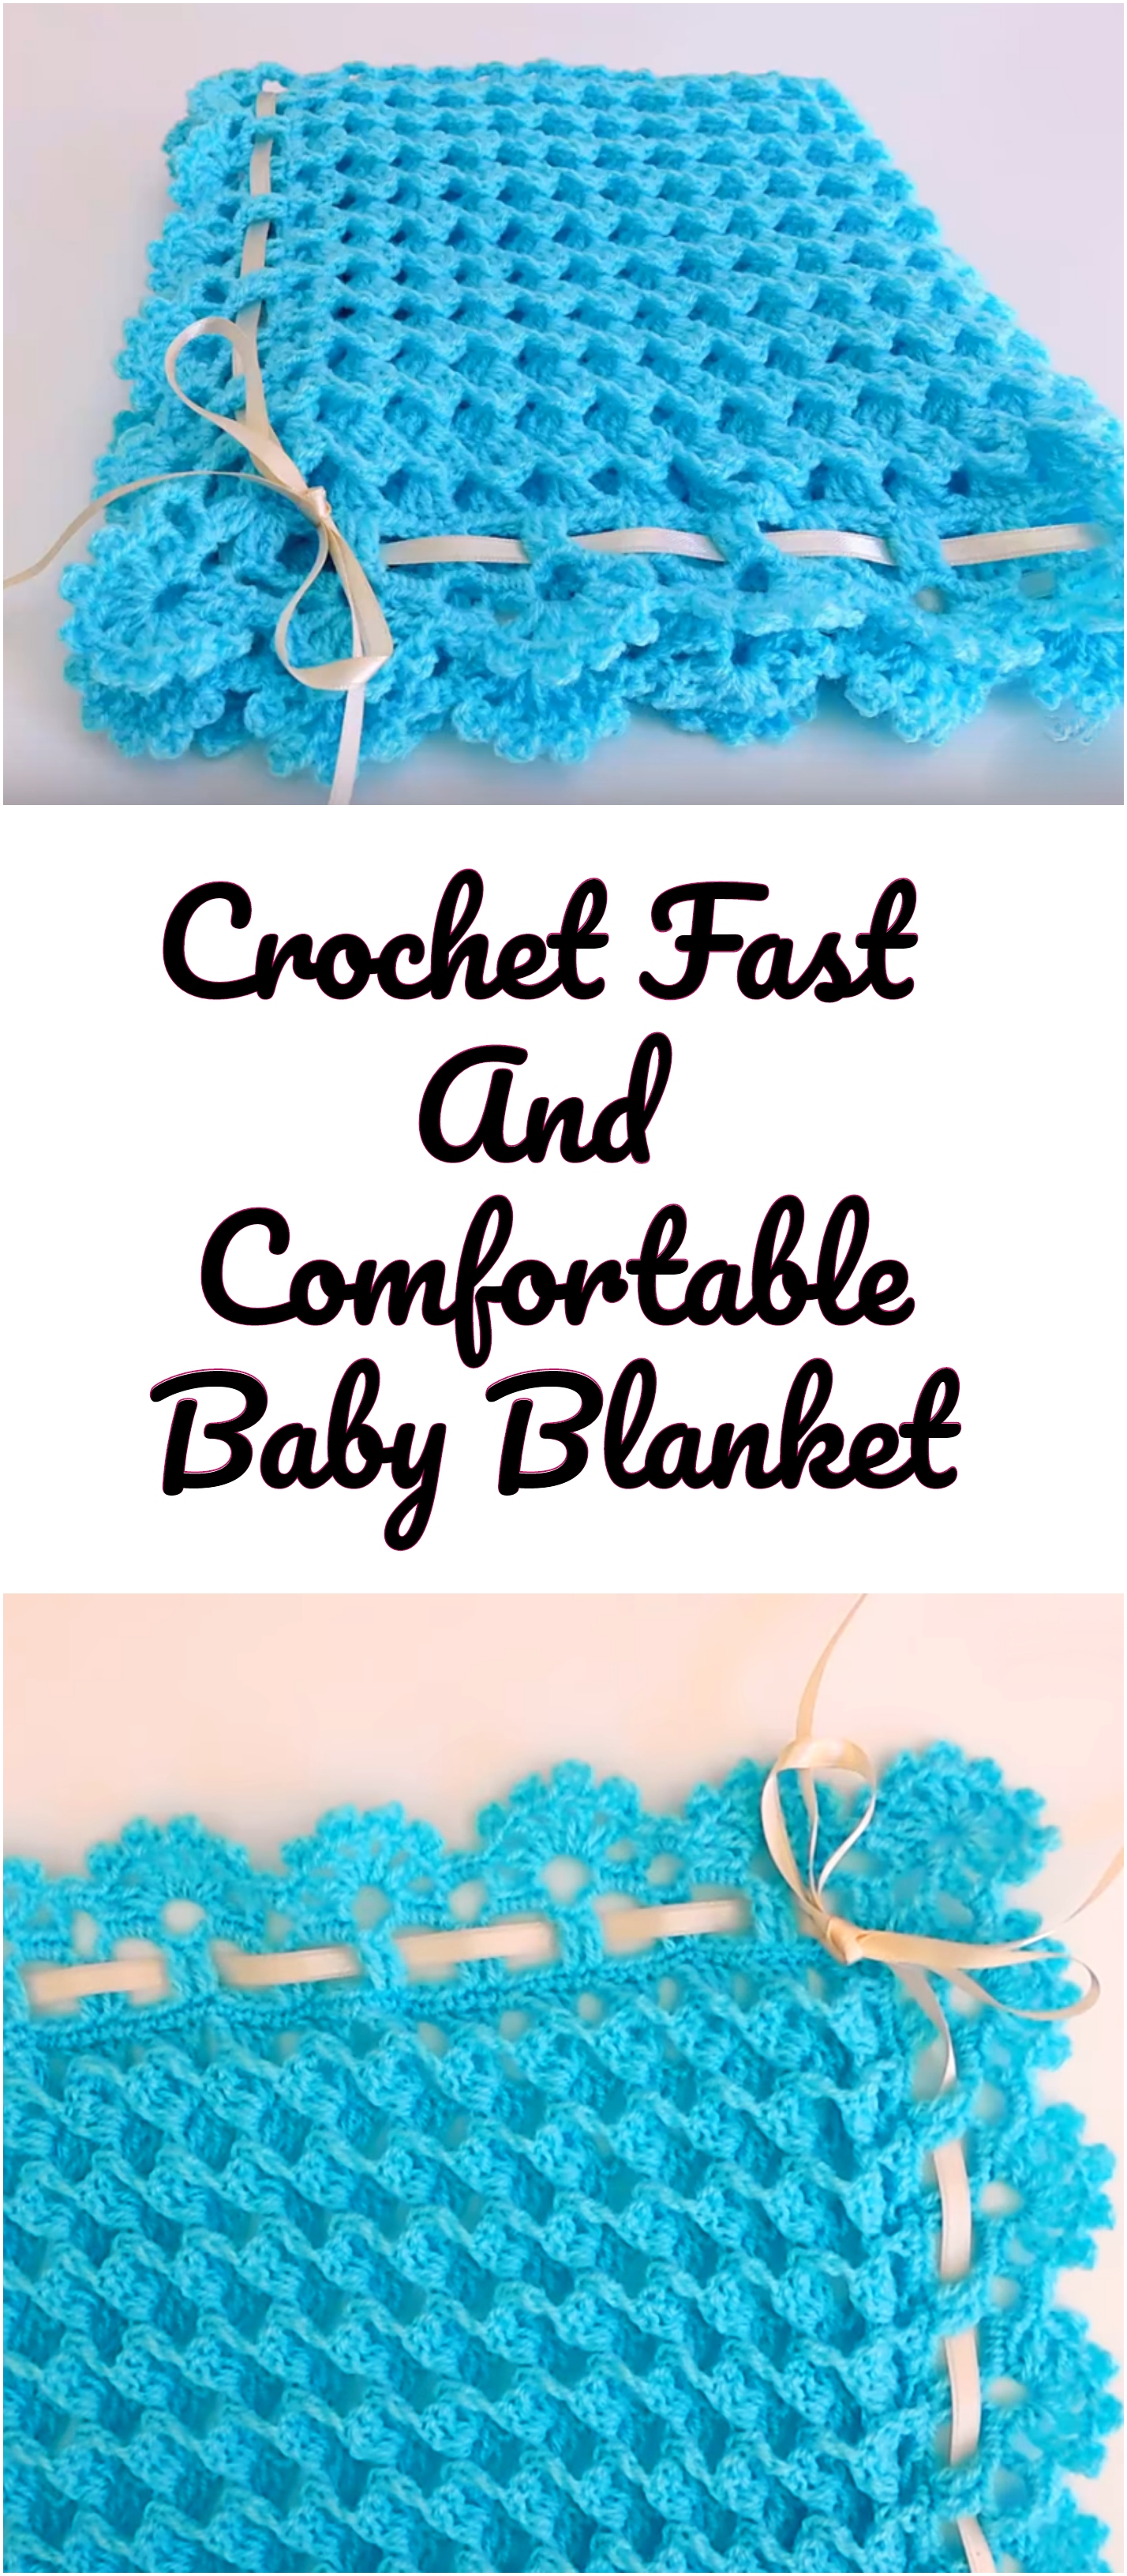 Crochet Fast And Comfortable Baby Blanket Crochet Ideas